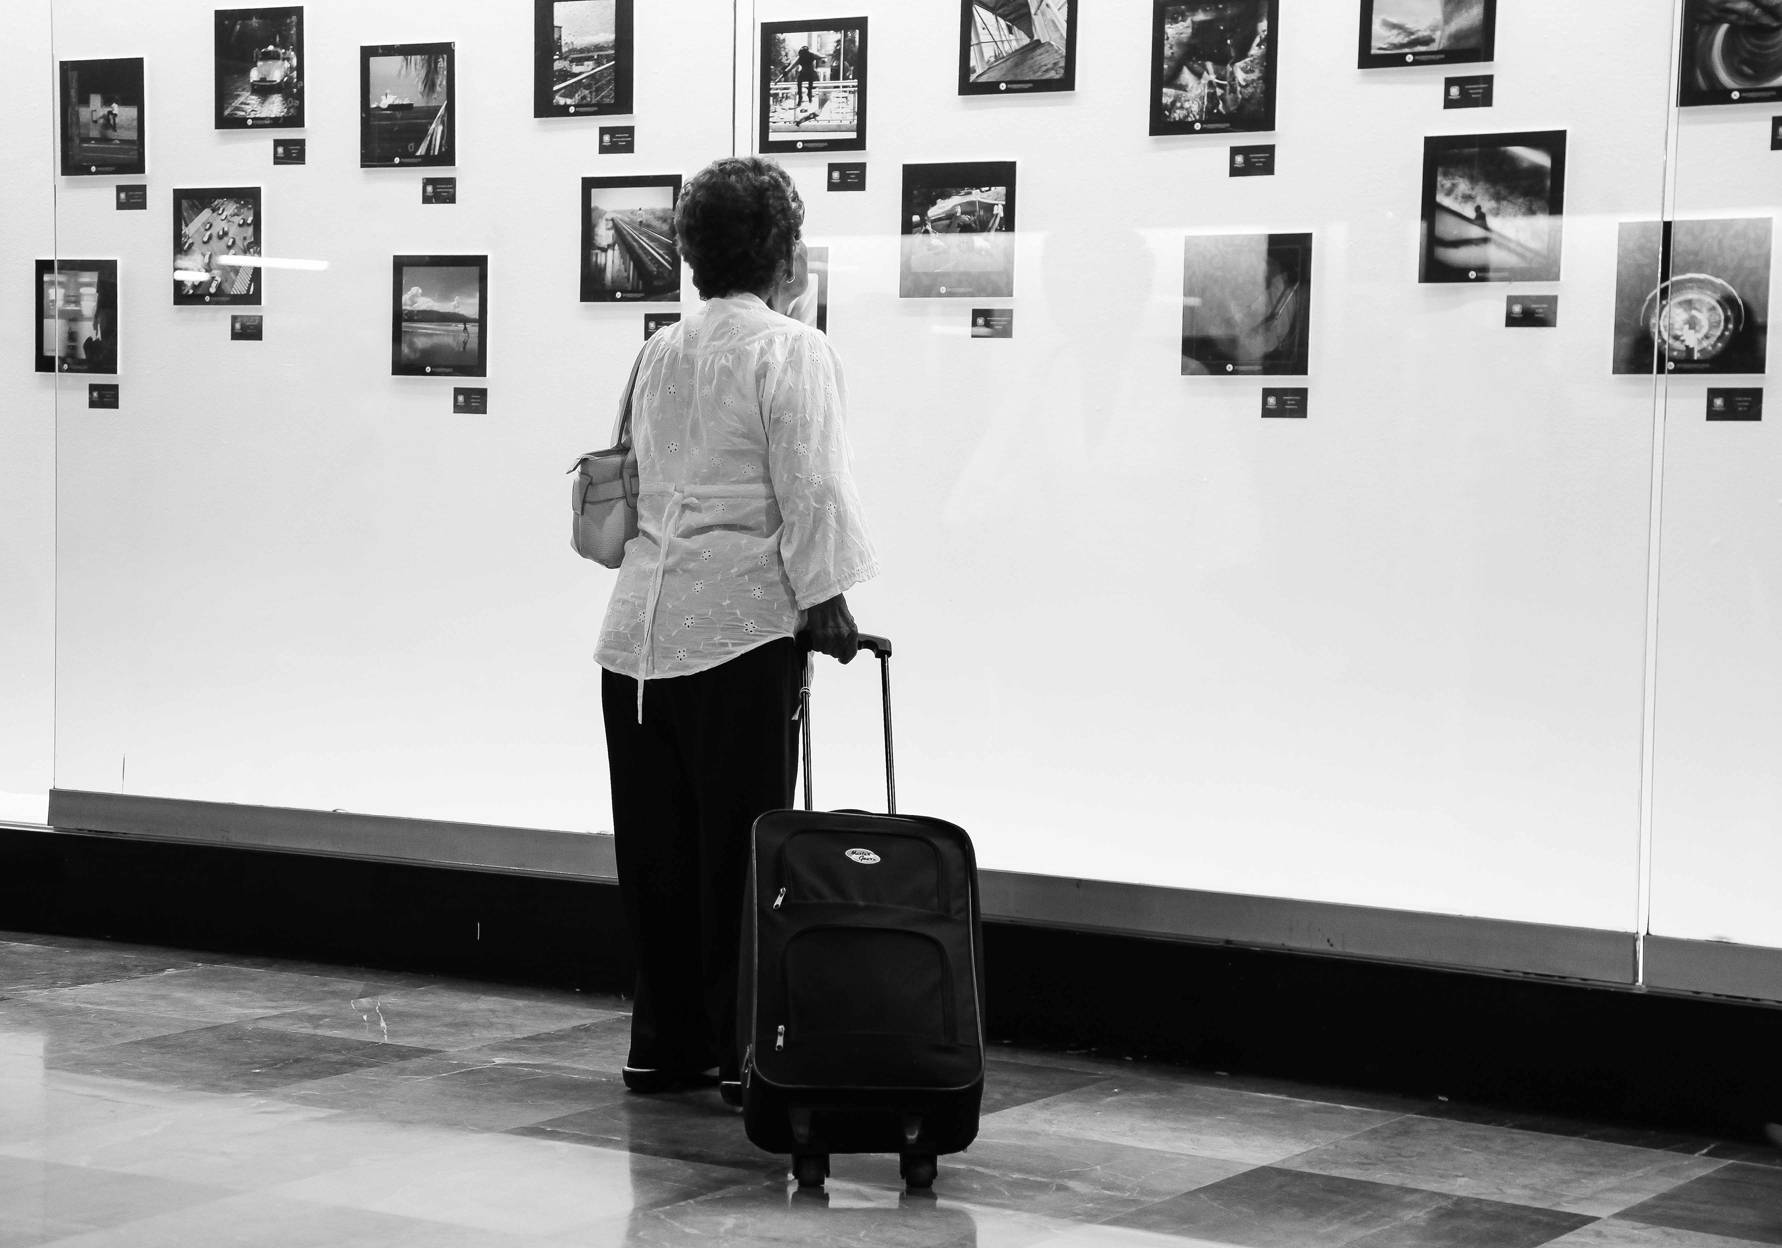 Instagramers Mexico 6th exhibition Movilidad in Guadalajara